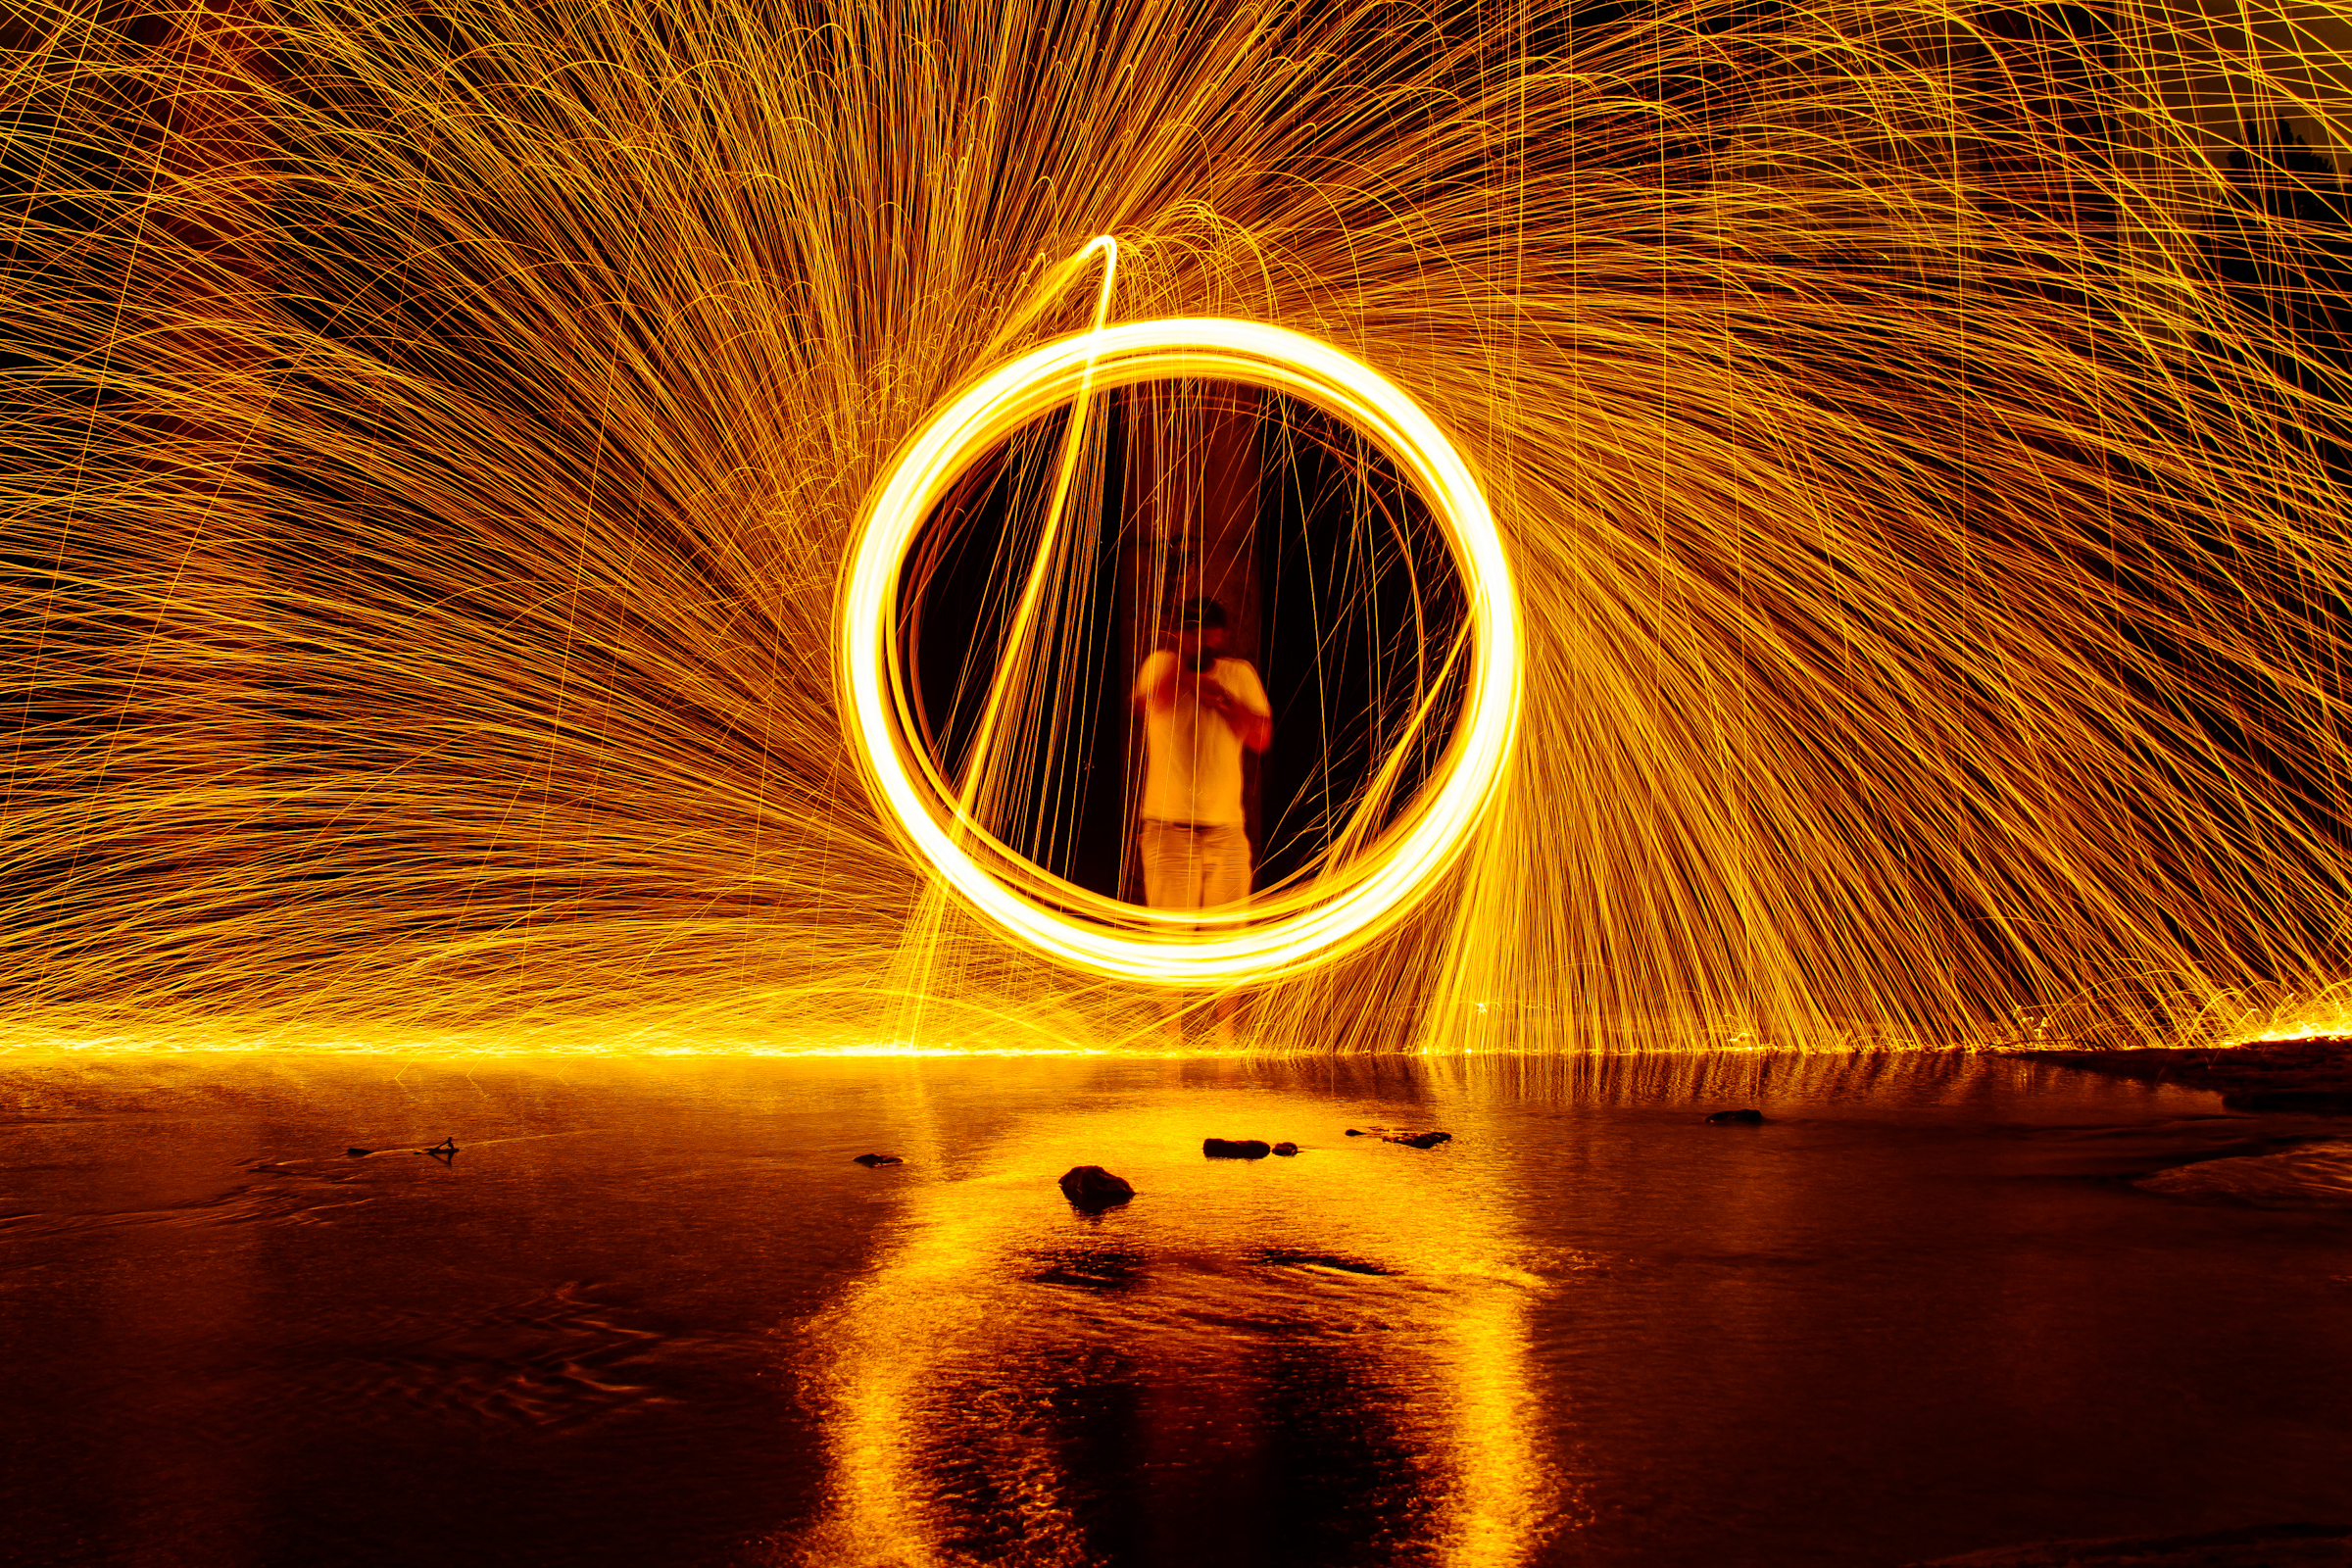 Steel Wool Photography: Ring of Fire